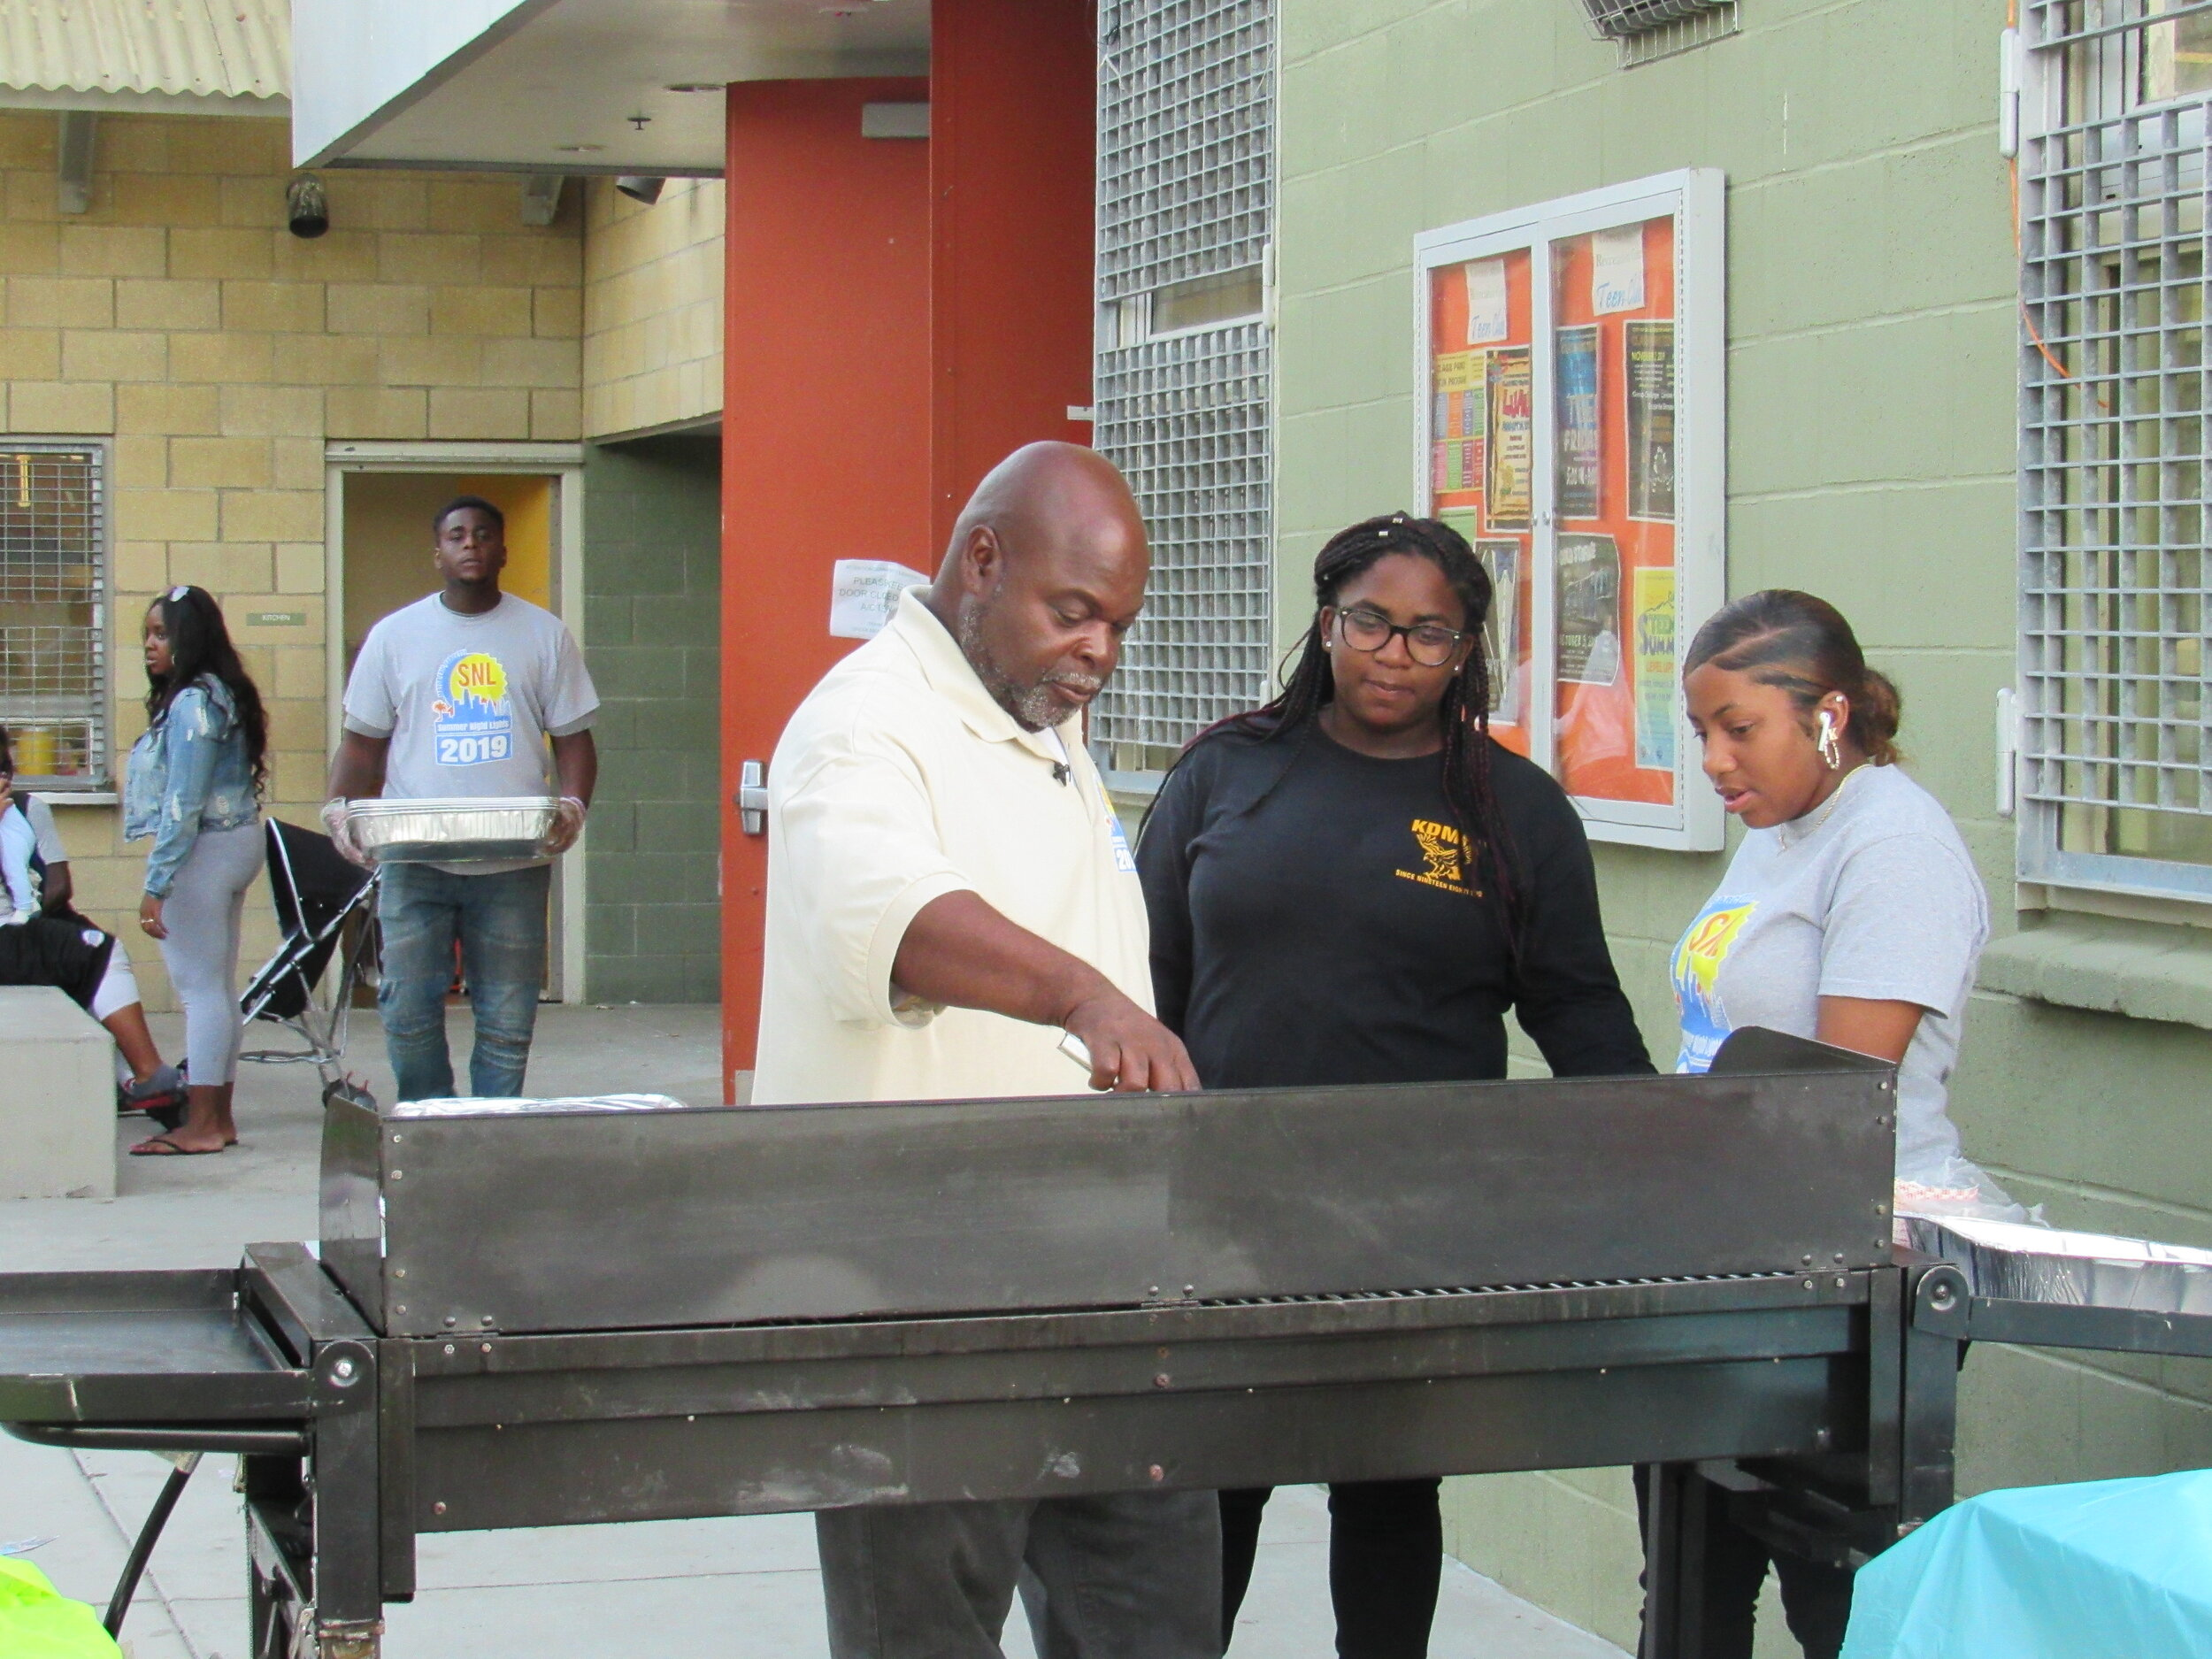 Larry managing the grill with neighborhood youth.